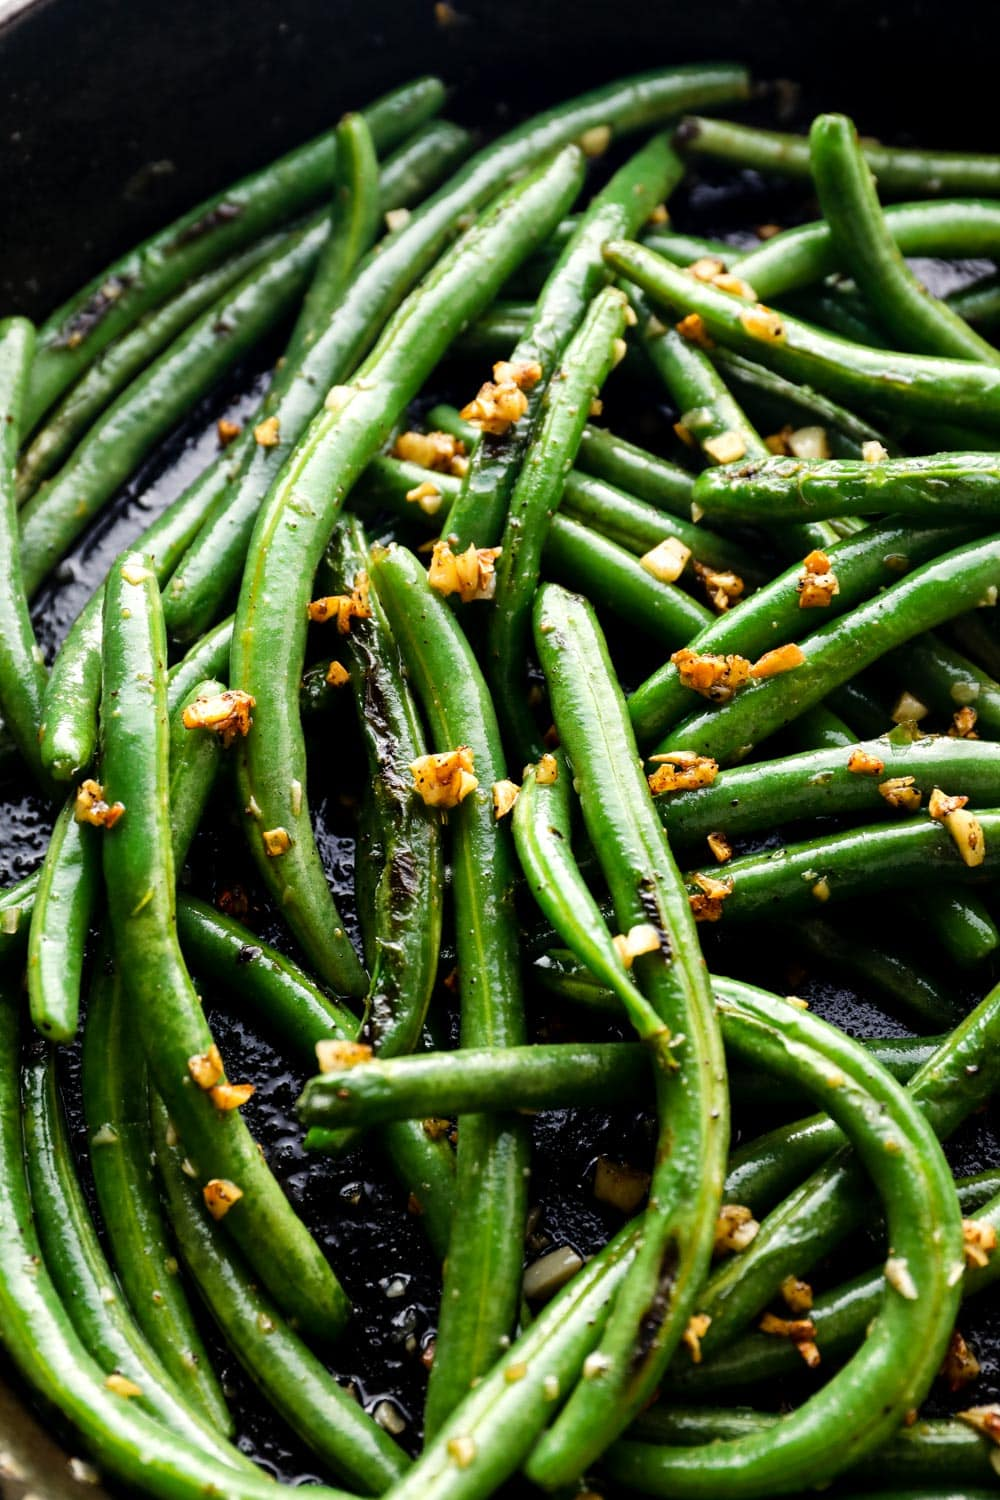 Green beans, sautéed in a cast iron skillet, with garlic.